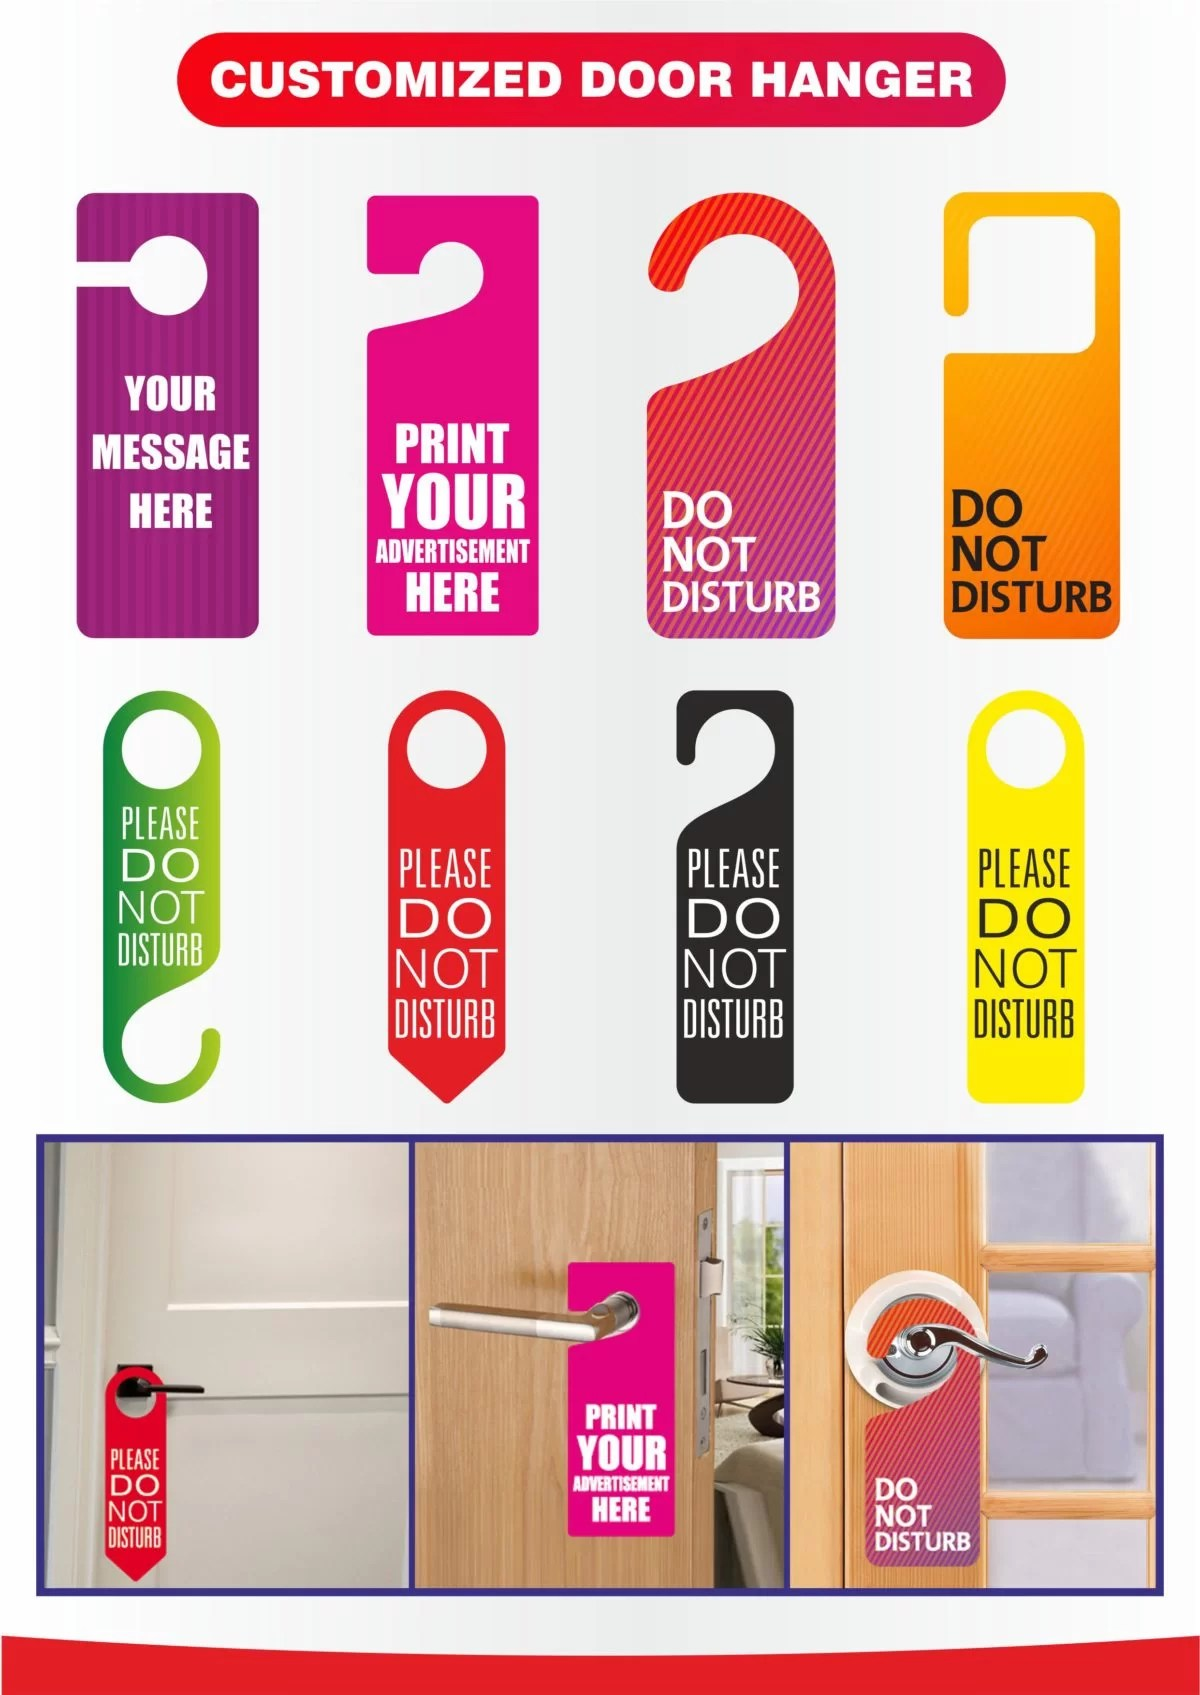 Door Hangers printing in dubai, customized door Hangers, Door Hanger